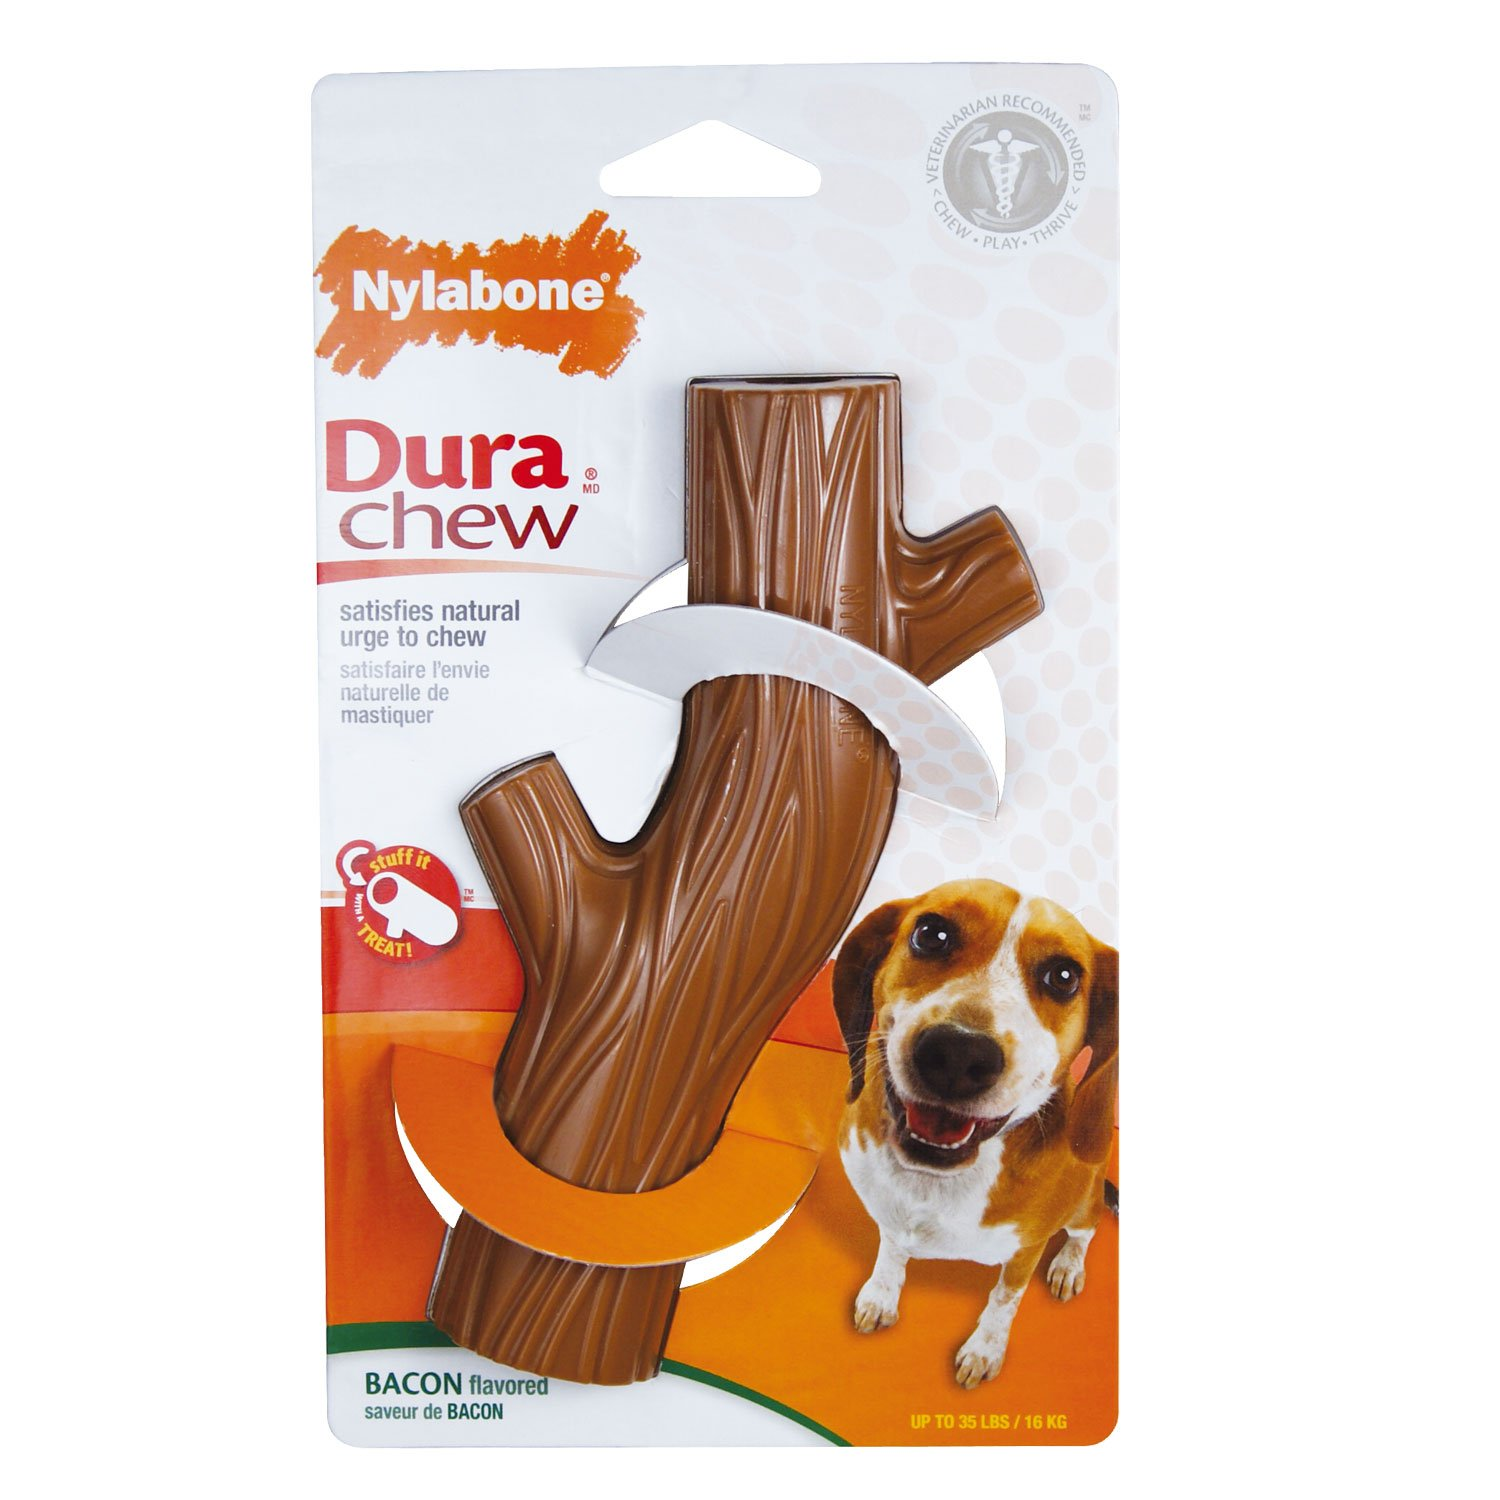 Nylabone Dura Chew Souper Bacon Flavored Hollow Stick Bone Dog Chew Toy